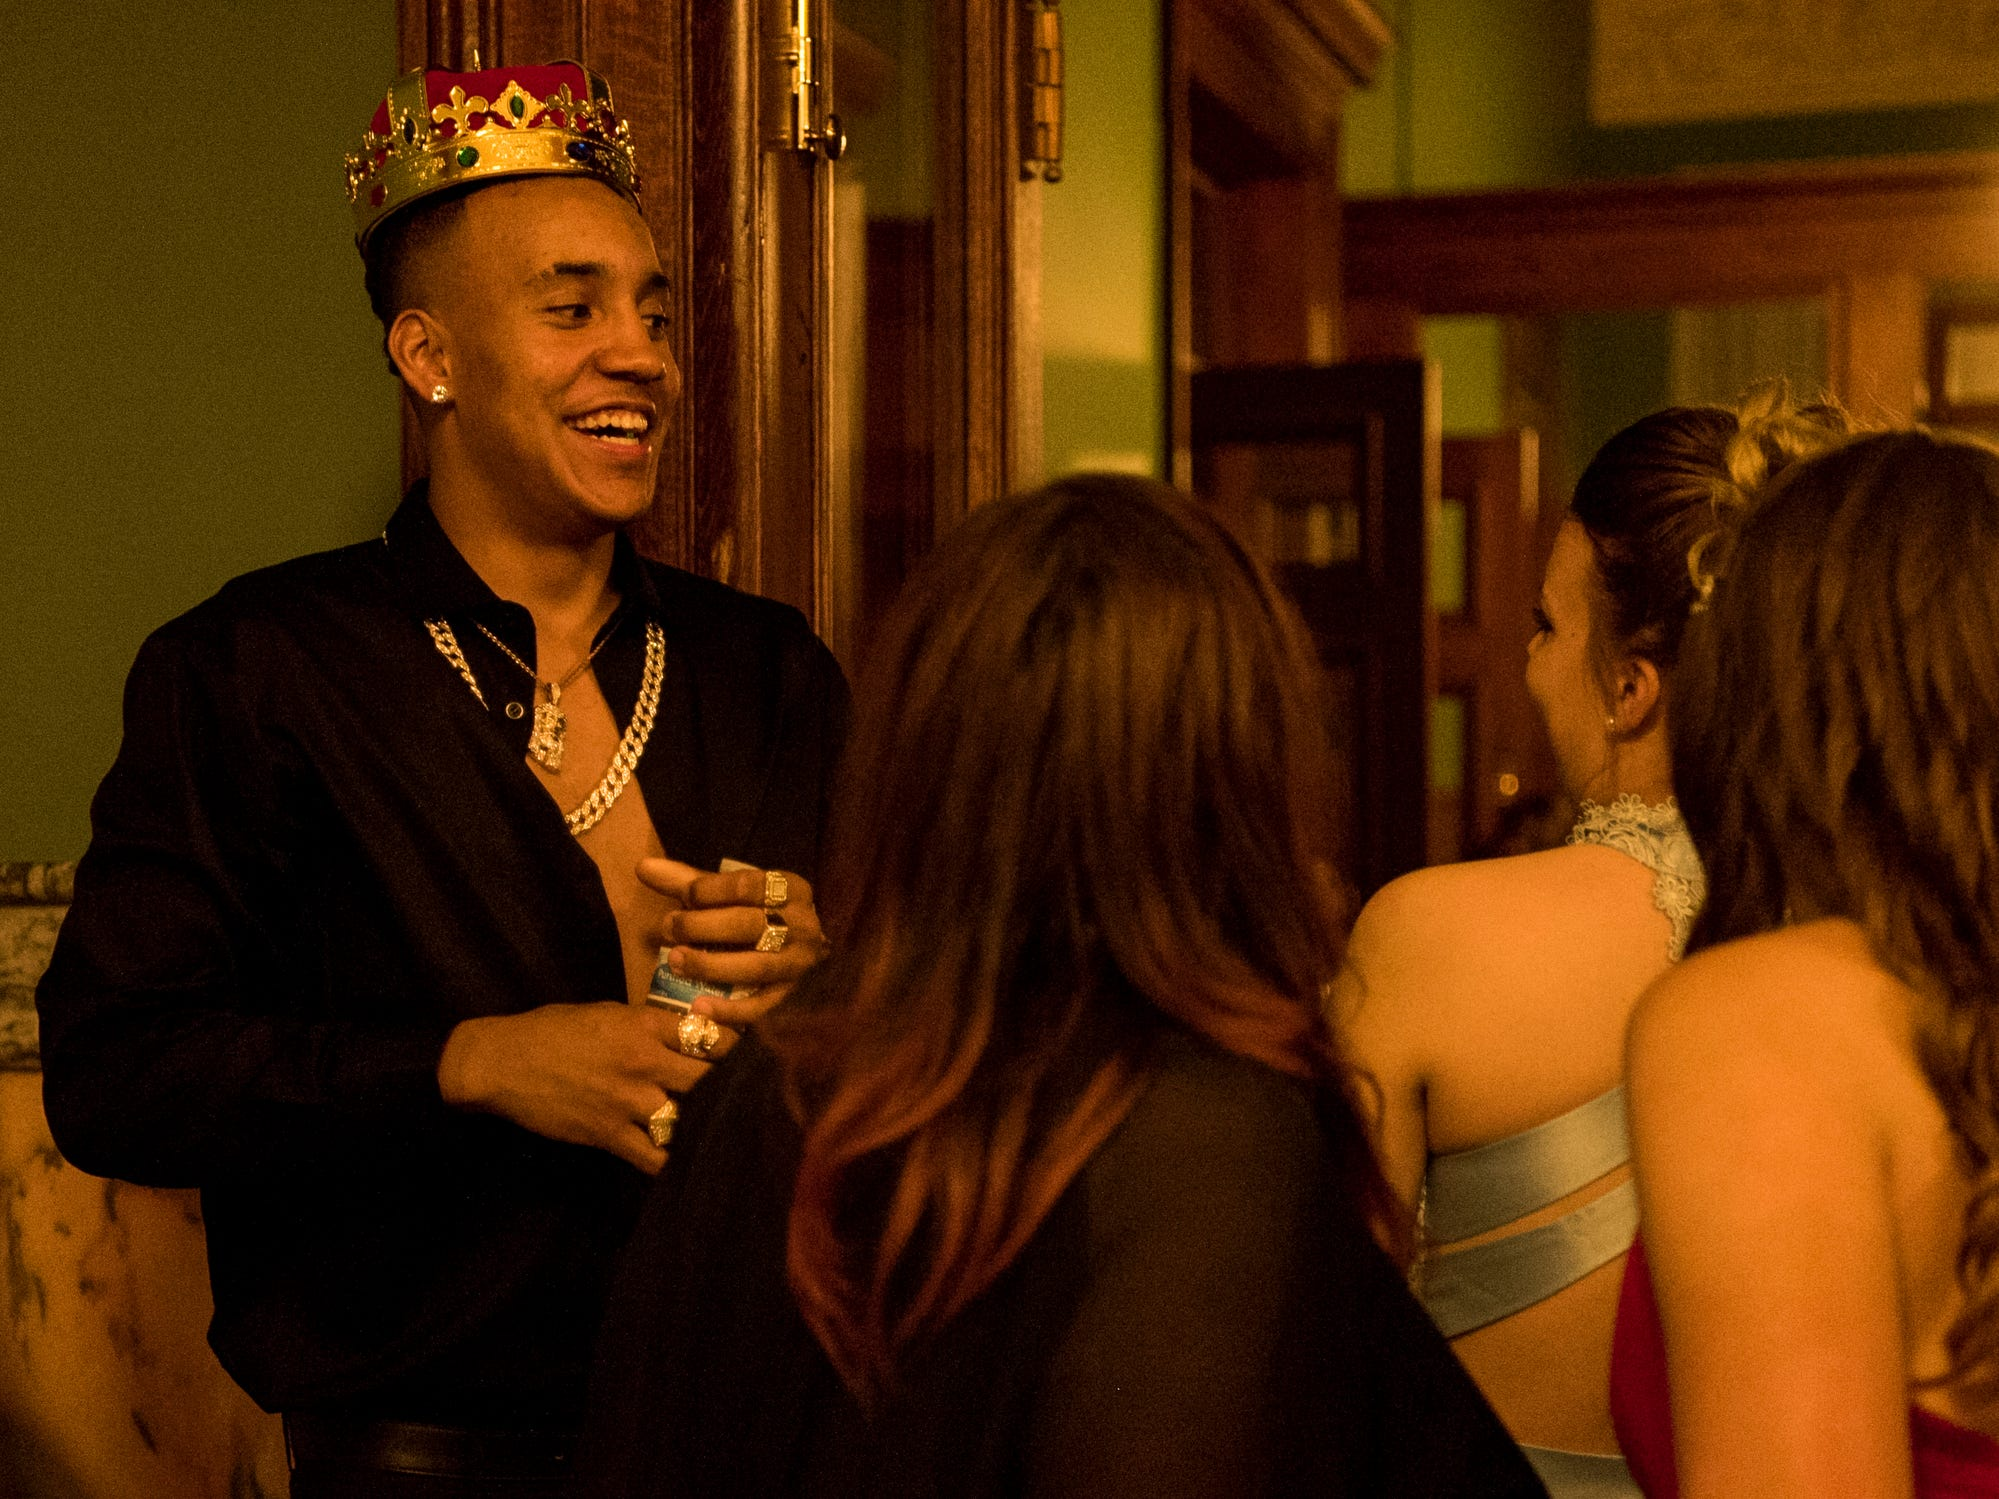 Donovan McNeal jokingly tries on the prom king crown before taking photos with friends at the Old Vanderburgh County Courthouse in downtown Evansville, Ind., Saturday, April 6, 2019.